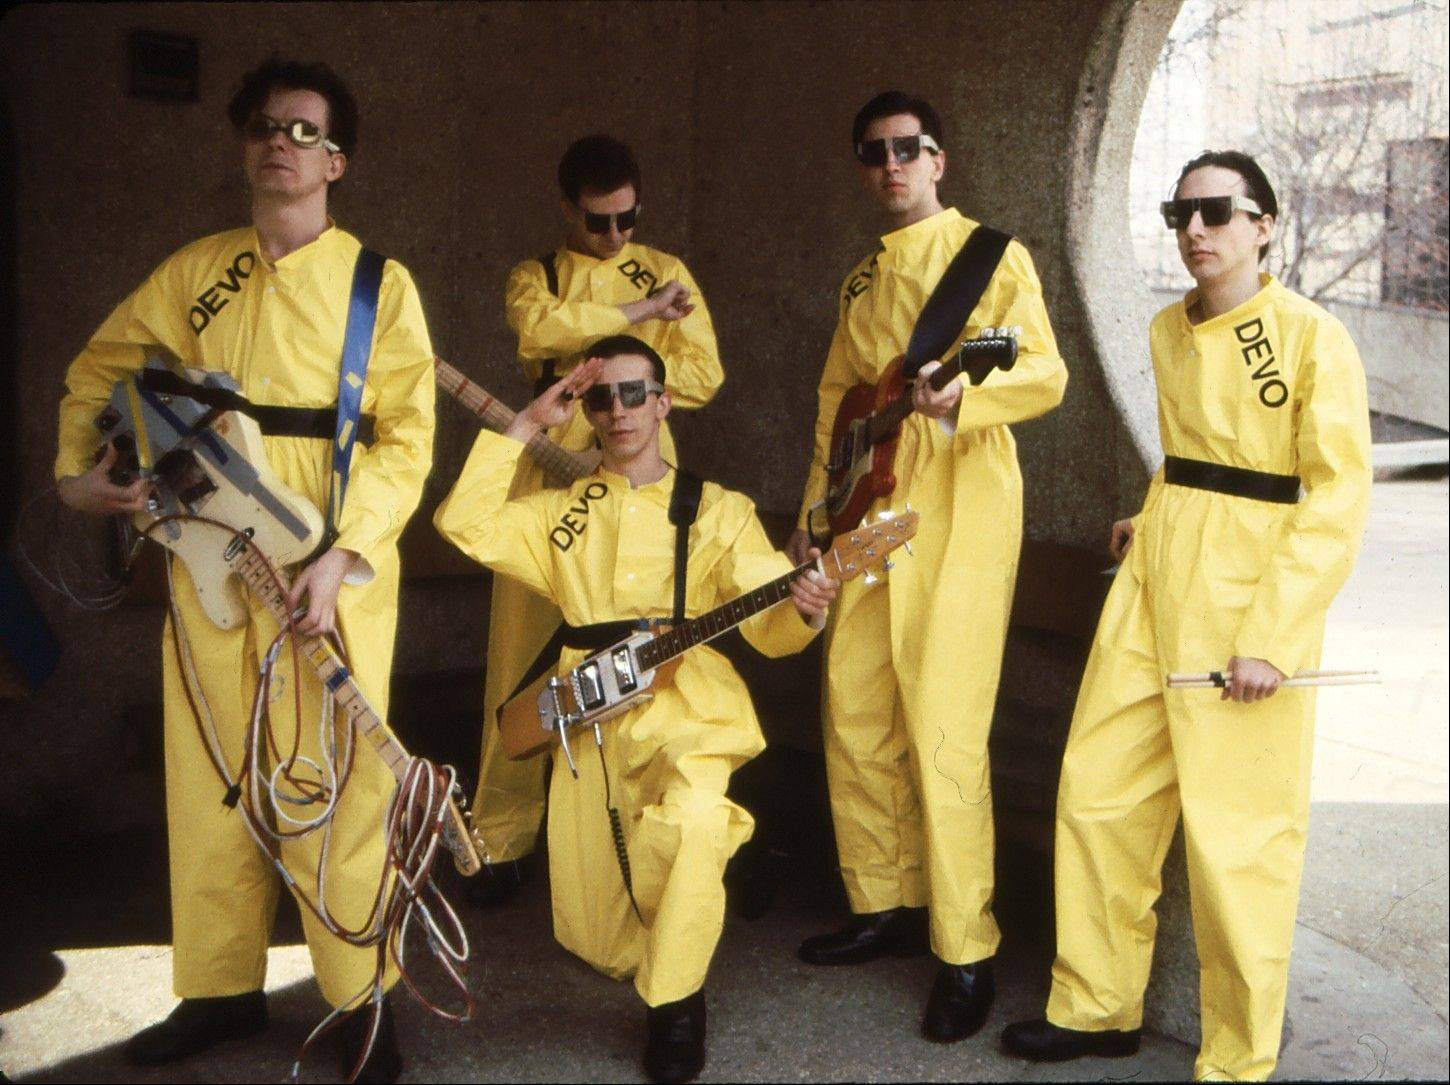 The band Devo in 1978, from left, Mark Mothersbaugh, Bob Mothersbaugh, kneeling, Jerry Casale, Bob Casale and Alan Myers.